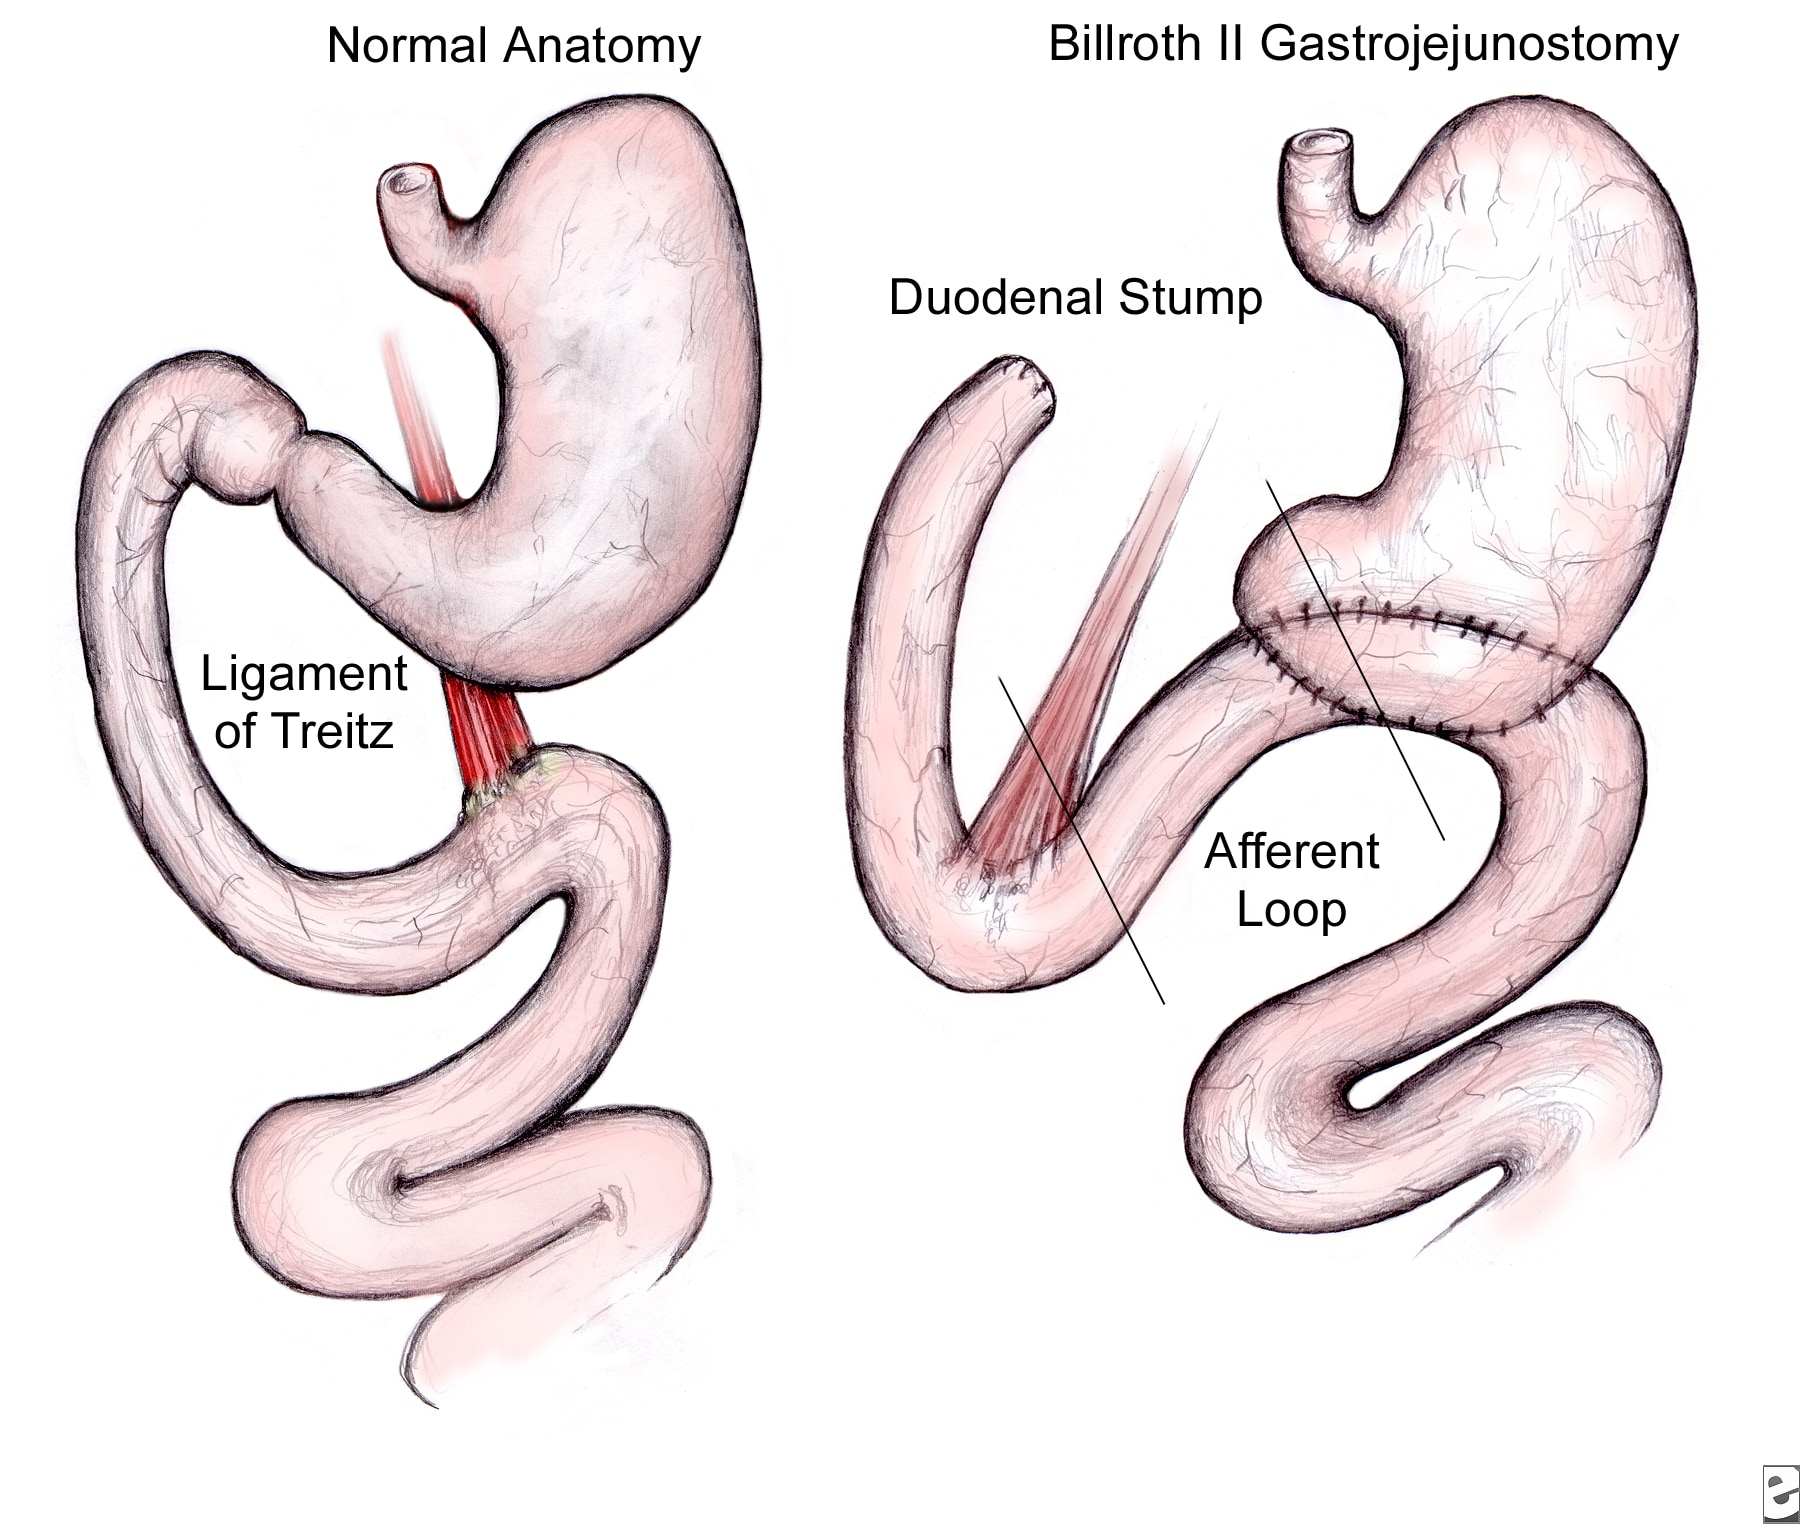 gastric bypass diagram tao 125 atv wiring afferent loop syndrome radiology notes